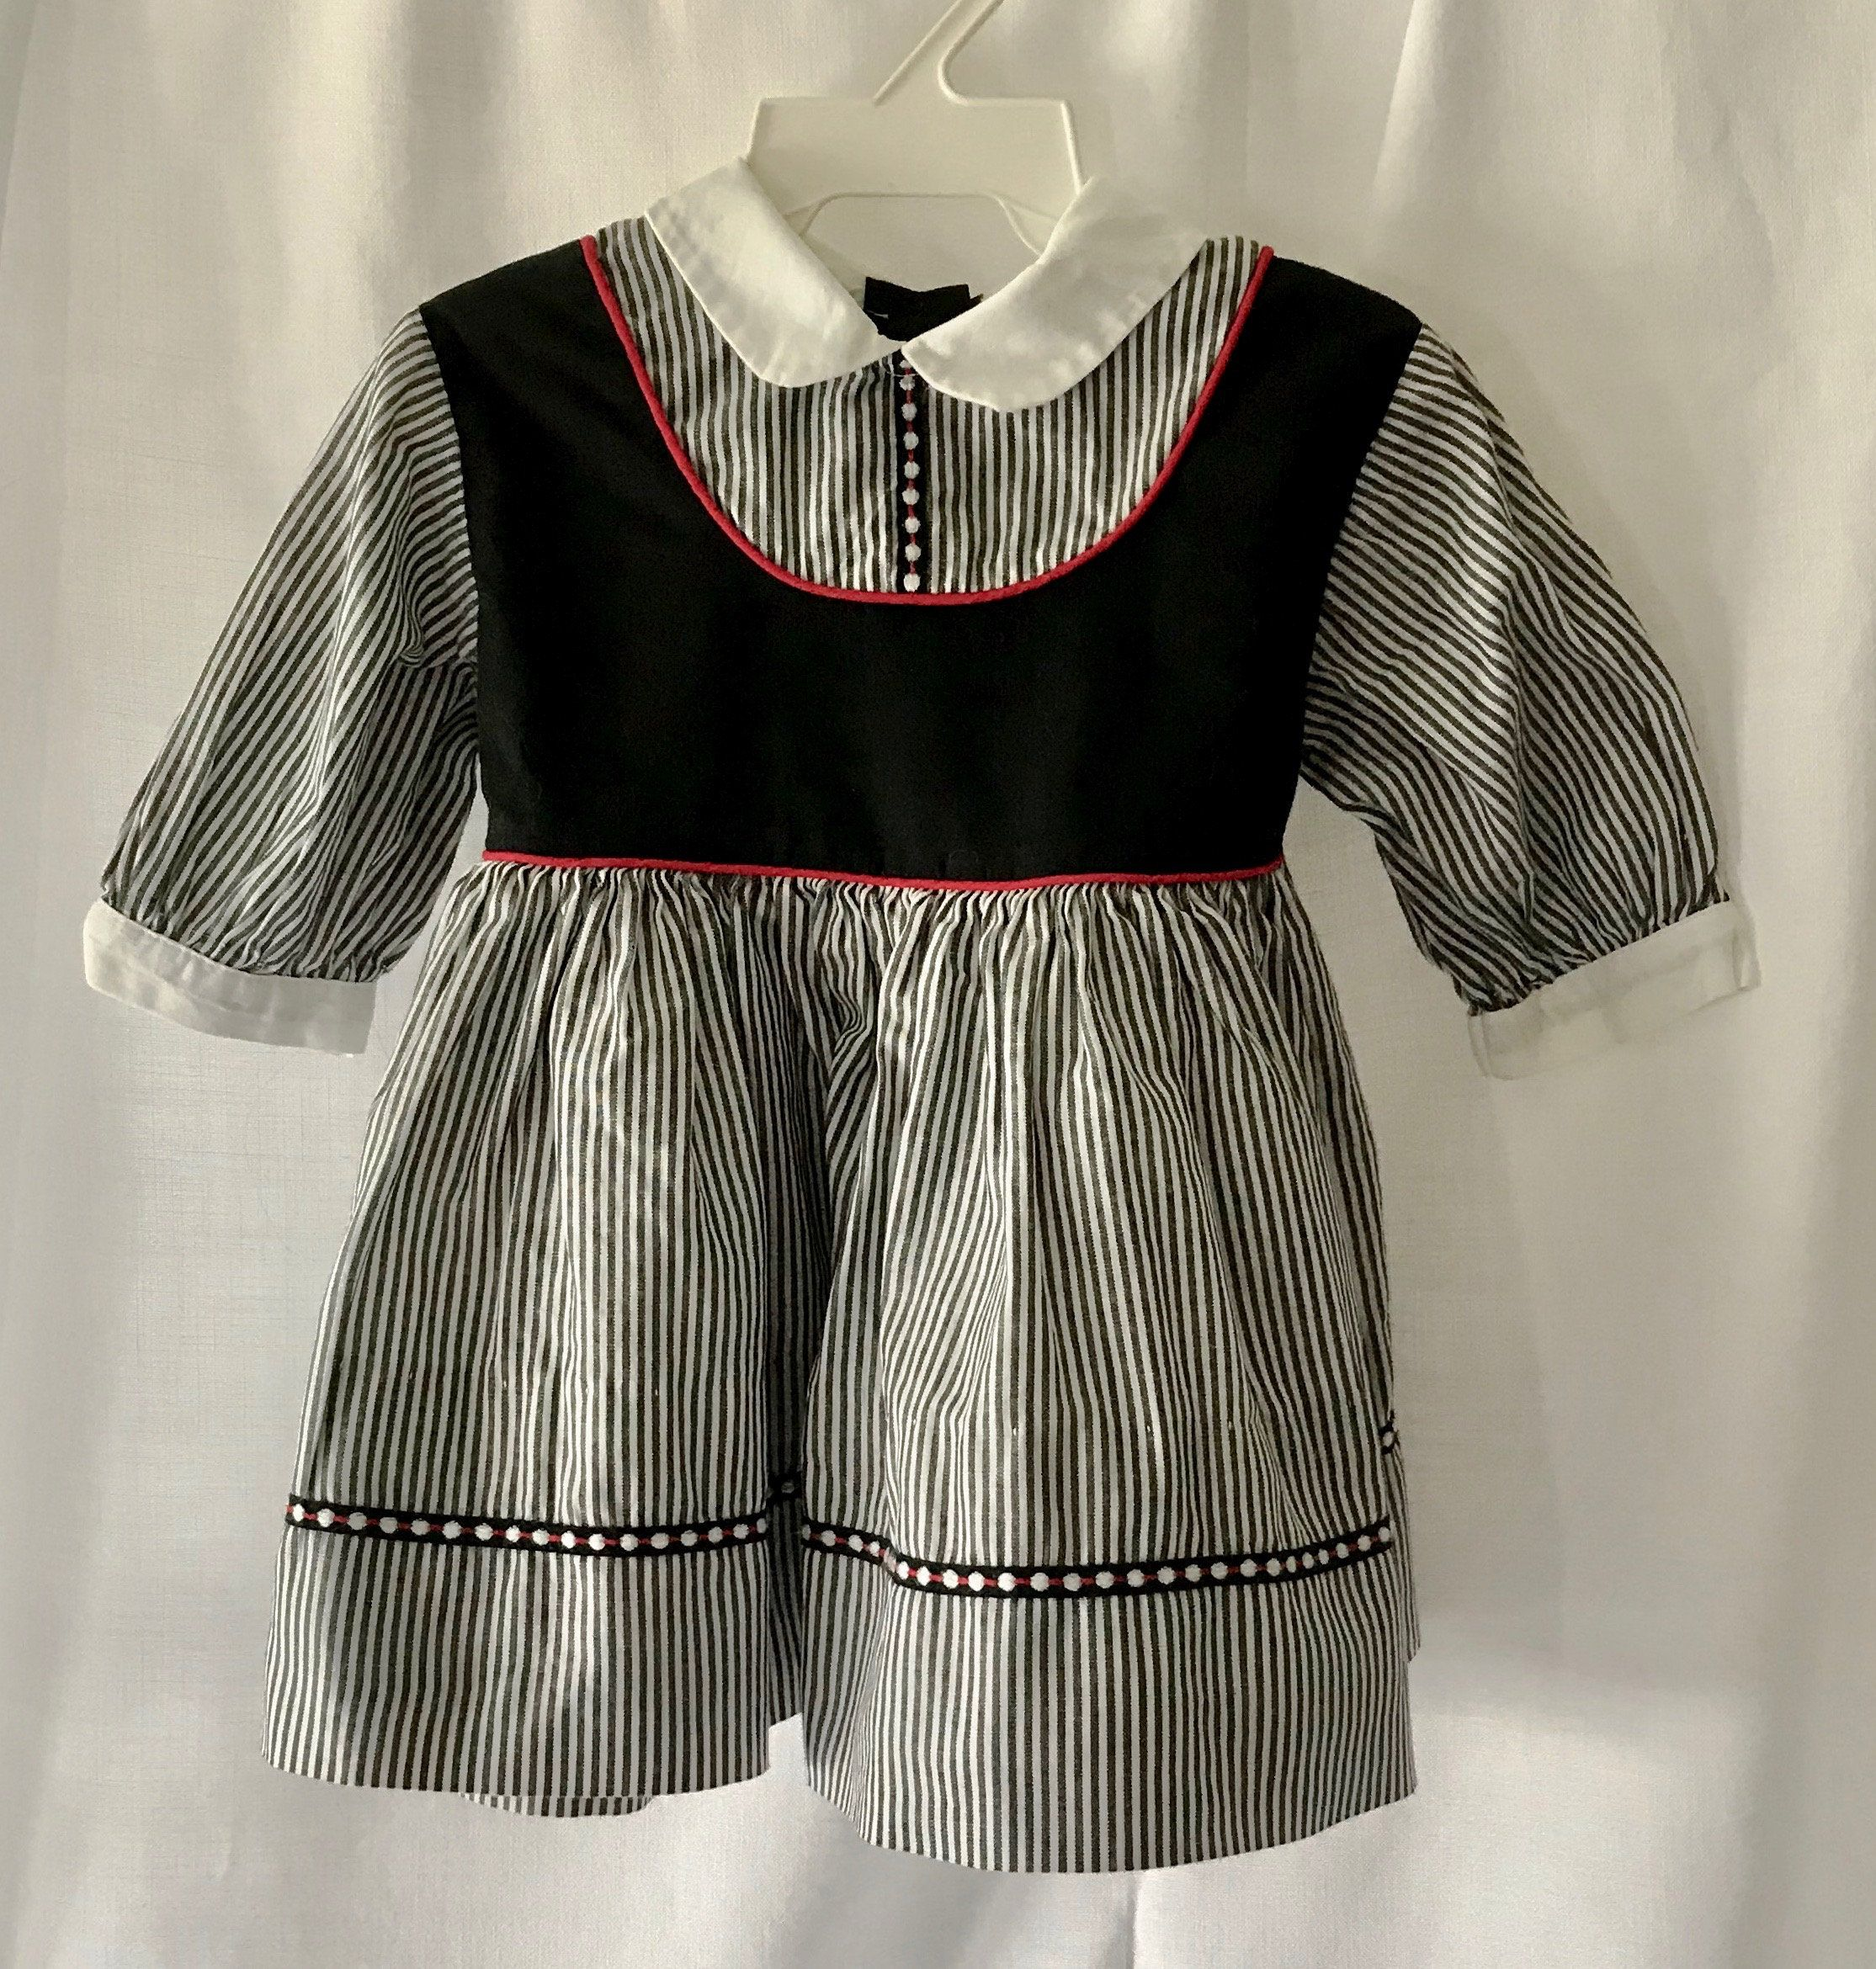 1960 S Vintage Toddler Girl Cotton Dress In Black And White Stripe With Crinoline Sz 2t Or 3t By Kate Gree Girls Cotton Dresses Pretty Blouses Cotton Dresses [ 2340 x 2229 Pixel ]